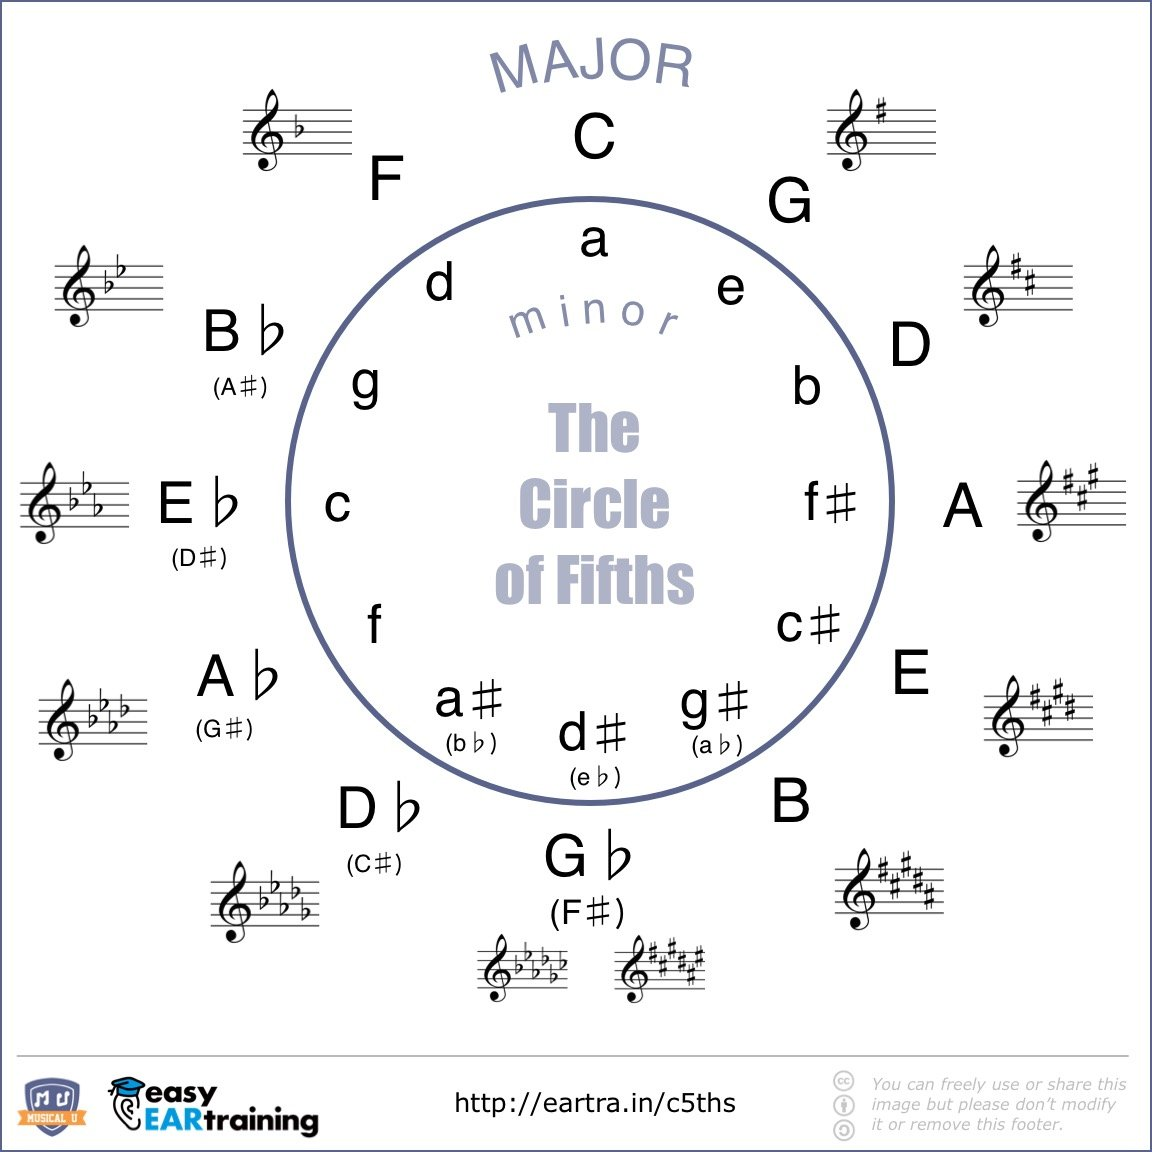 The Circle of Fifths - Relative Minors